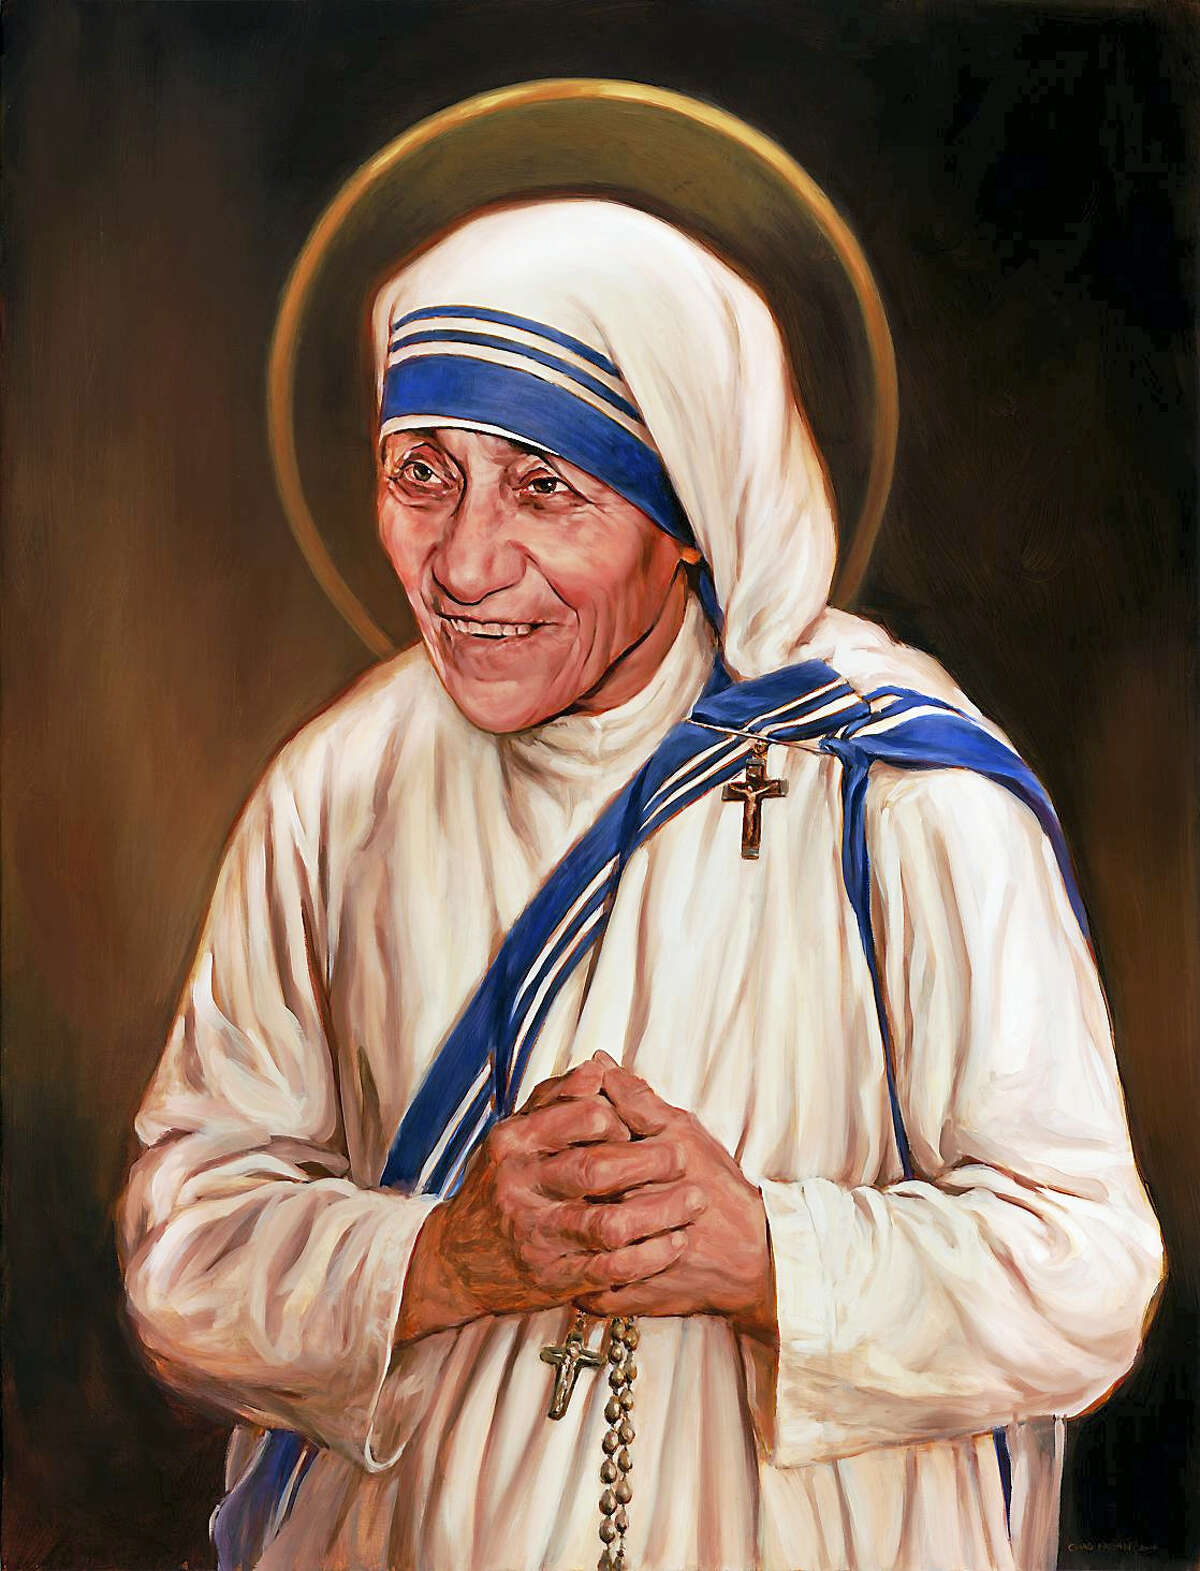 The canonization portrait of Mother Teresa by Chas Fagan that was commissioned by the Knights of Columbus.